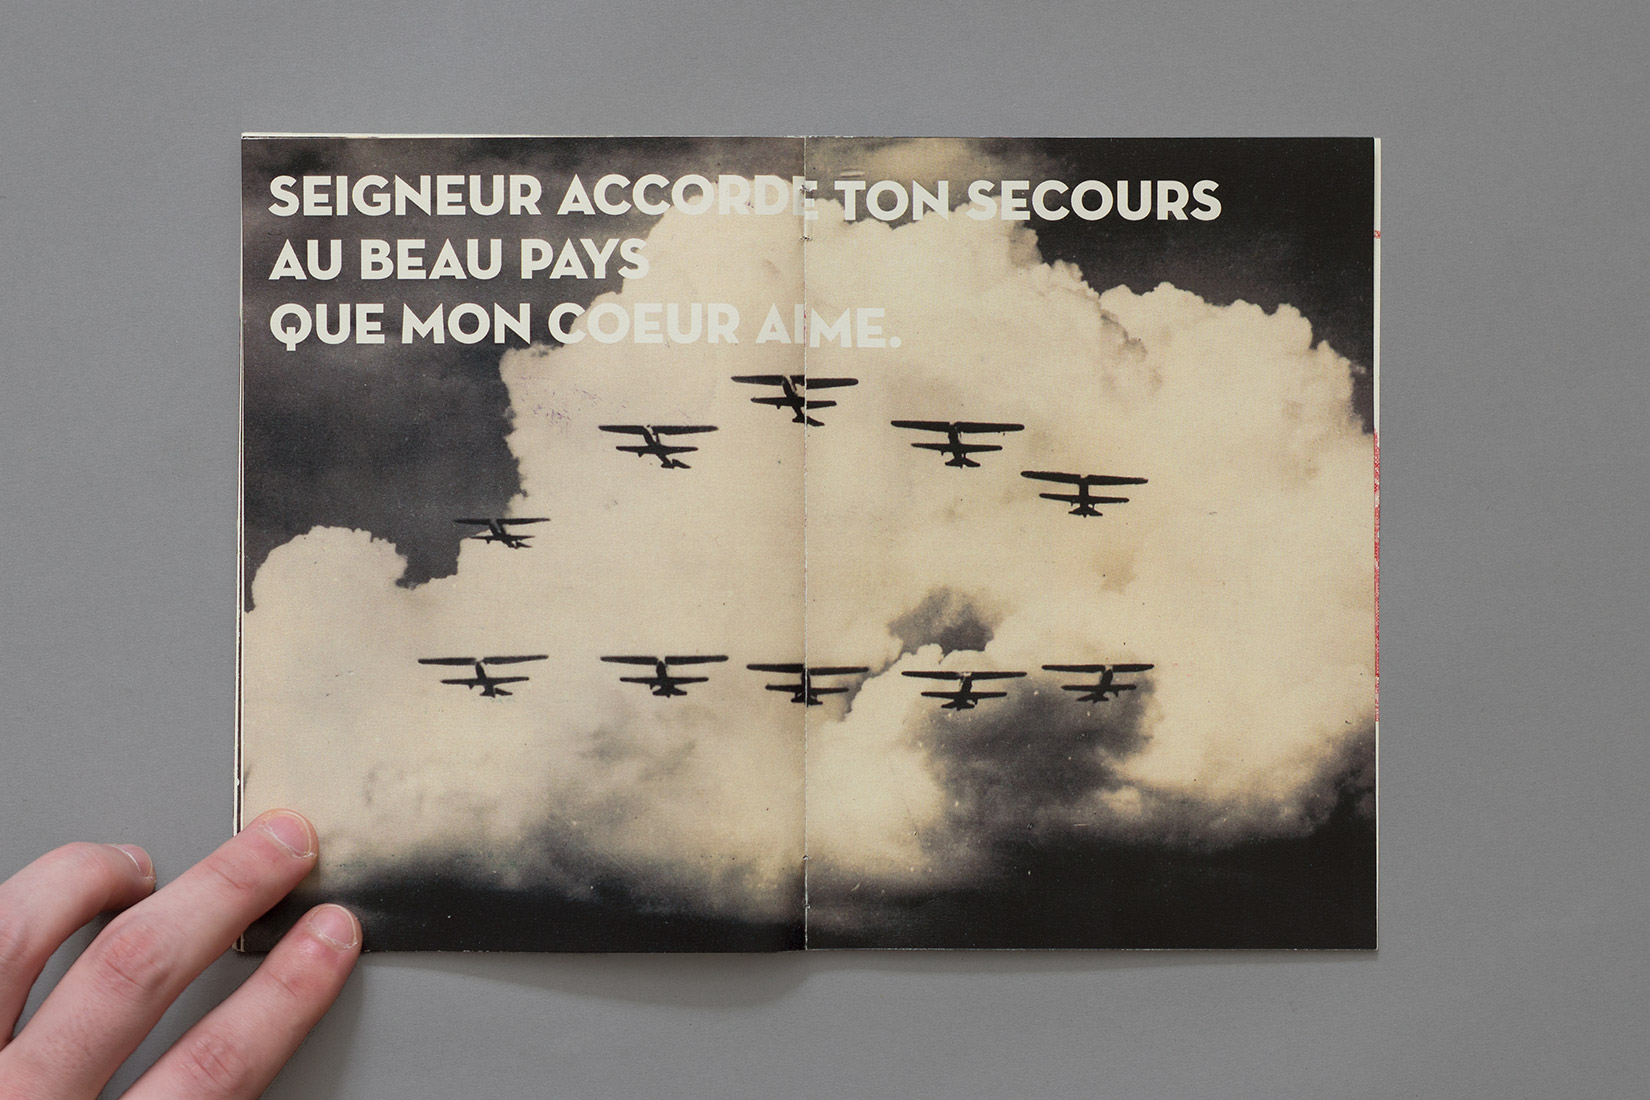 Manual for the perfect little soldier, military aircraft, clouds, Seigneur accorde ton secours au beau pays que mon coeur aime.